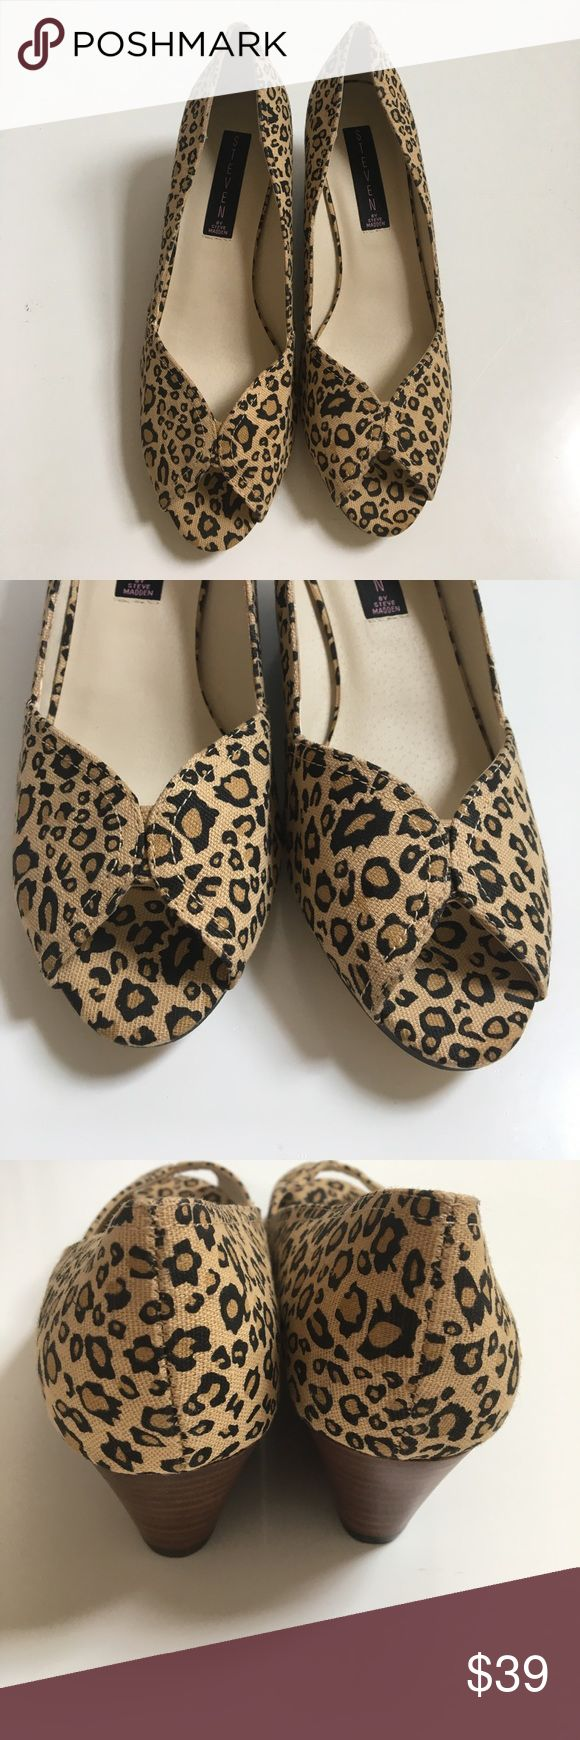 """NWOT { Steve Madden } leopard canvas wedges Steve Madden leopard print canvas low wedge, approx 2"""" heel, peep toe, new in great condition has minor storage wear and sole has a little marking from store and rub markings from trying to remove. These are very adorable and Cute. Steven by Steve Madden Shoes Wedges"""